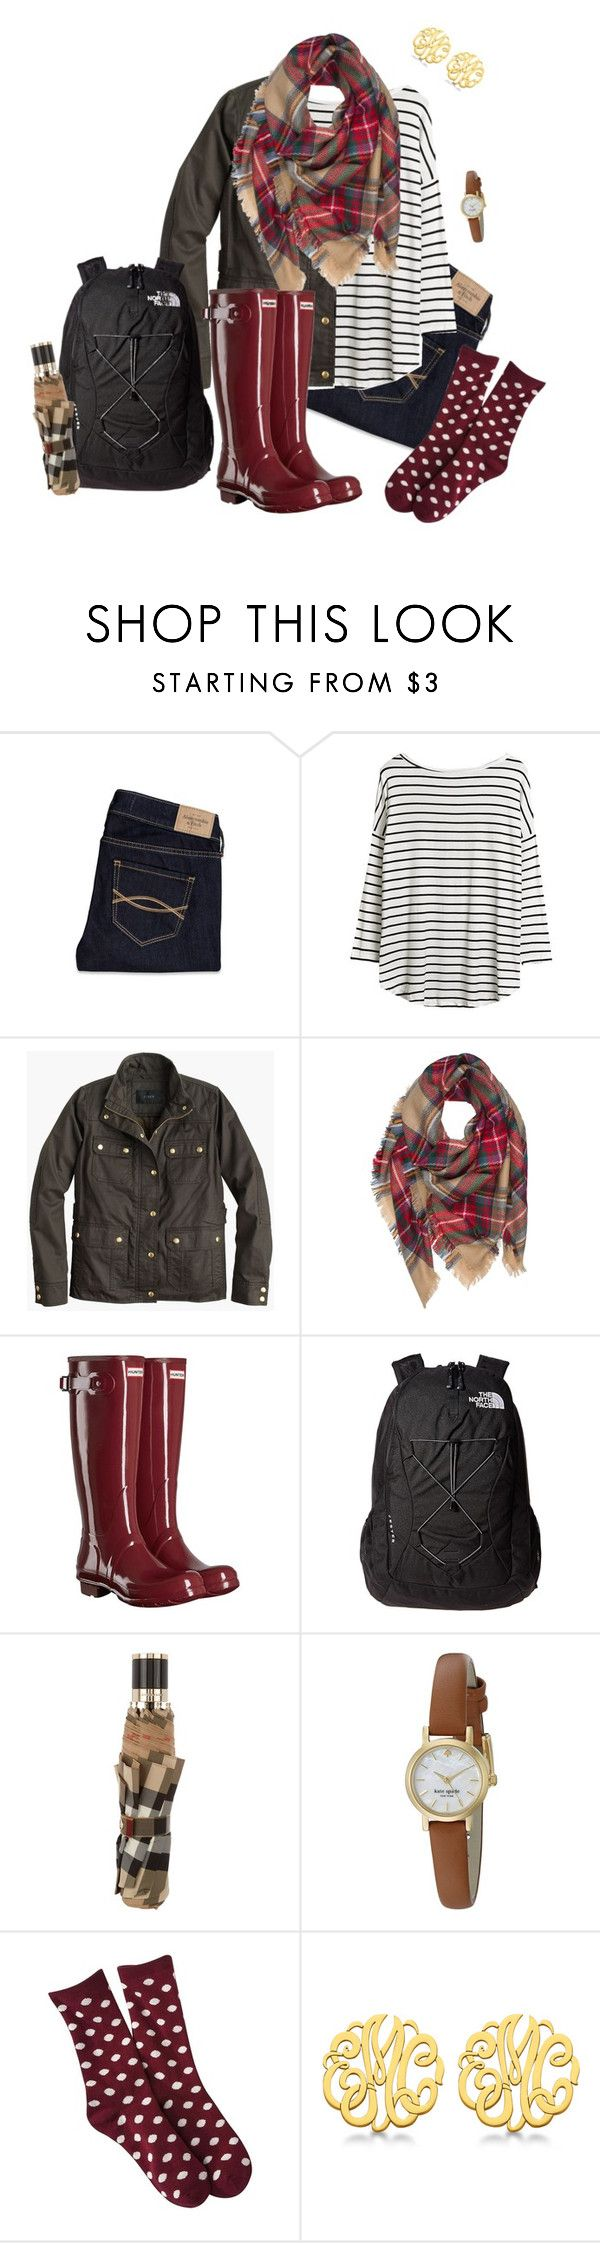 """save it for a rainy day"" by southrnblle ❤ liked on Polyvore featuring Abercrombie & Fitch, J.Crew, Hunter, The North Face, Burberry, Kate Spade, Merona and Allurez"